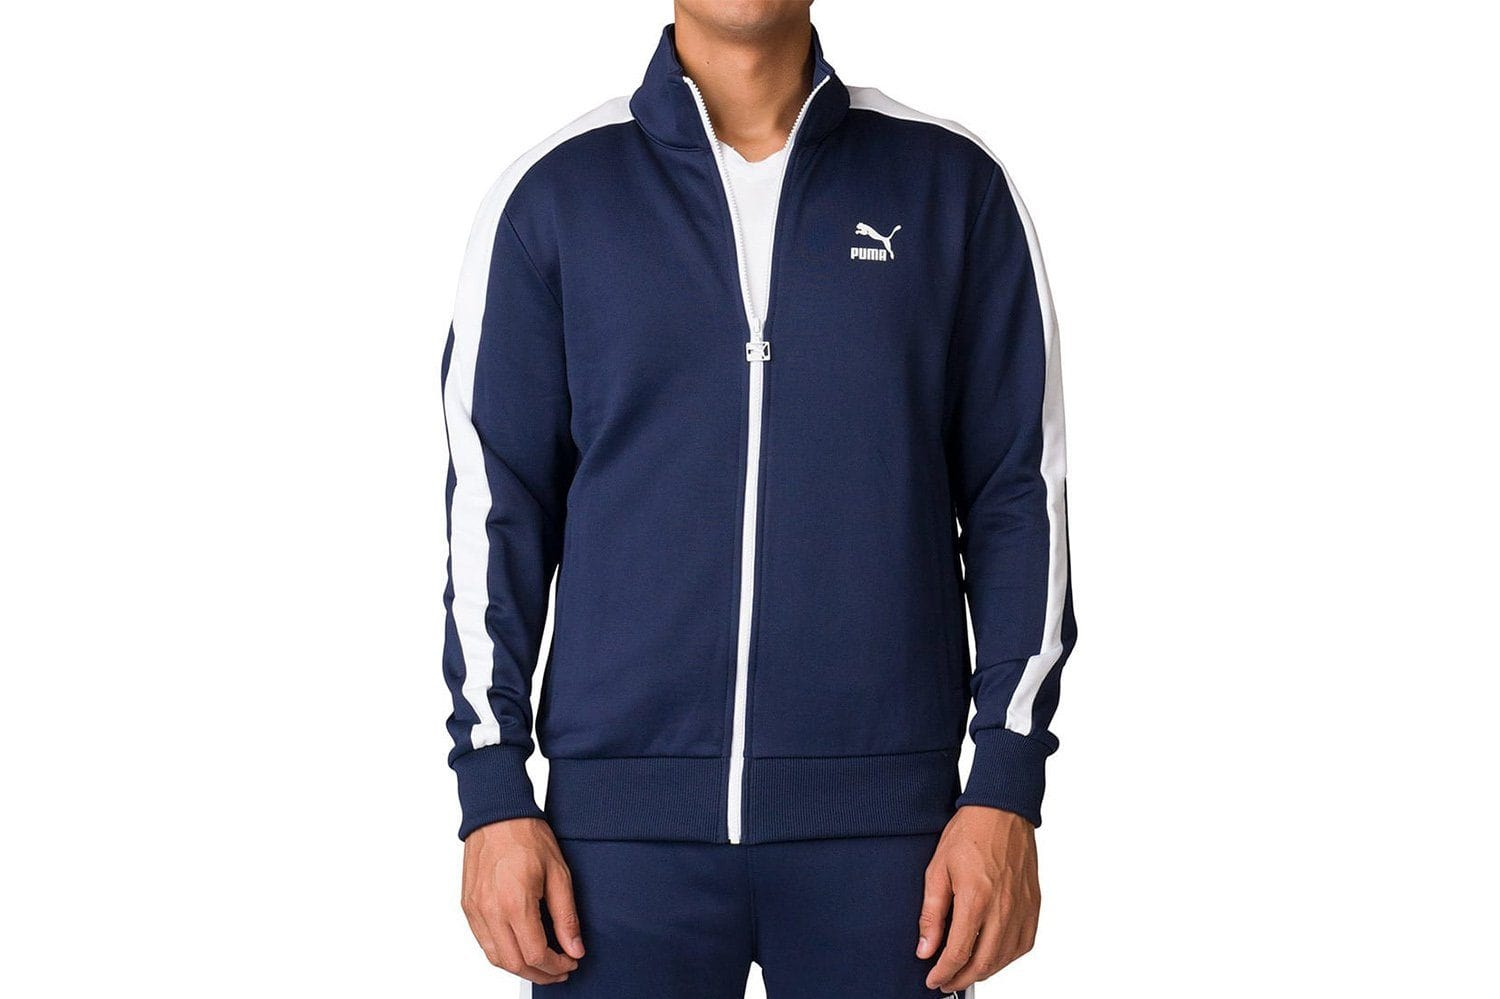 ARCHIVE T7TRACK JACKET -PEACOAT MENS SOFTGOODS PUMA